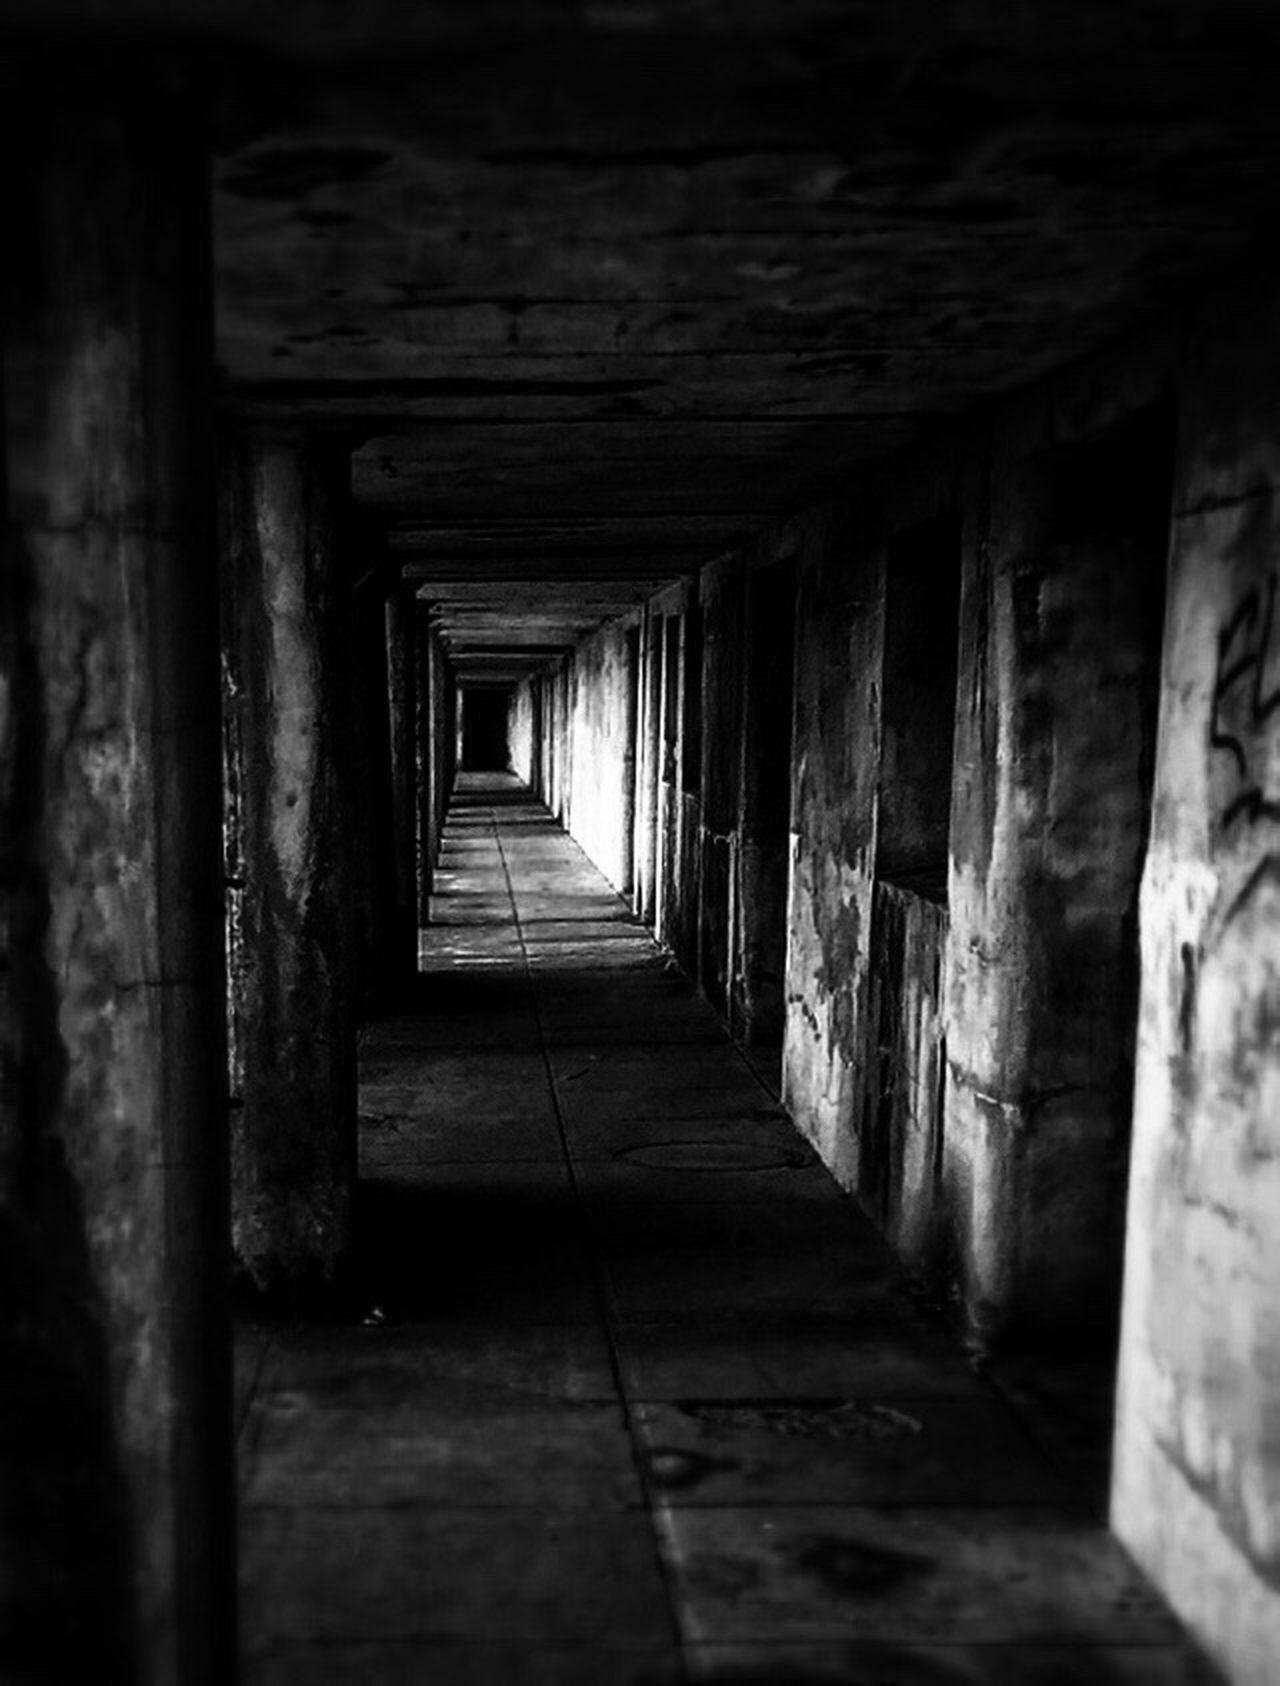 Architecture Passageway Built Structure Passage Backgrounds Layers And Textures Abstractions View Perspective Building Exterior Views Scenics Abandoned Places Abandoned Abandoned Buildings